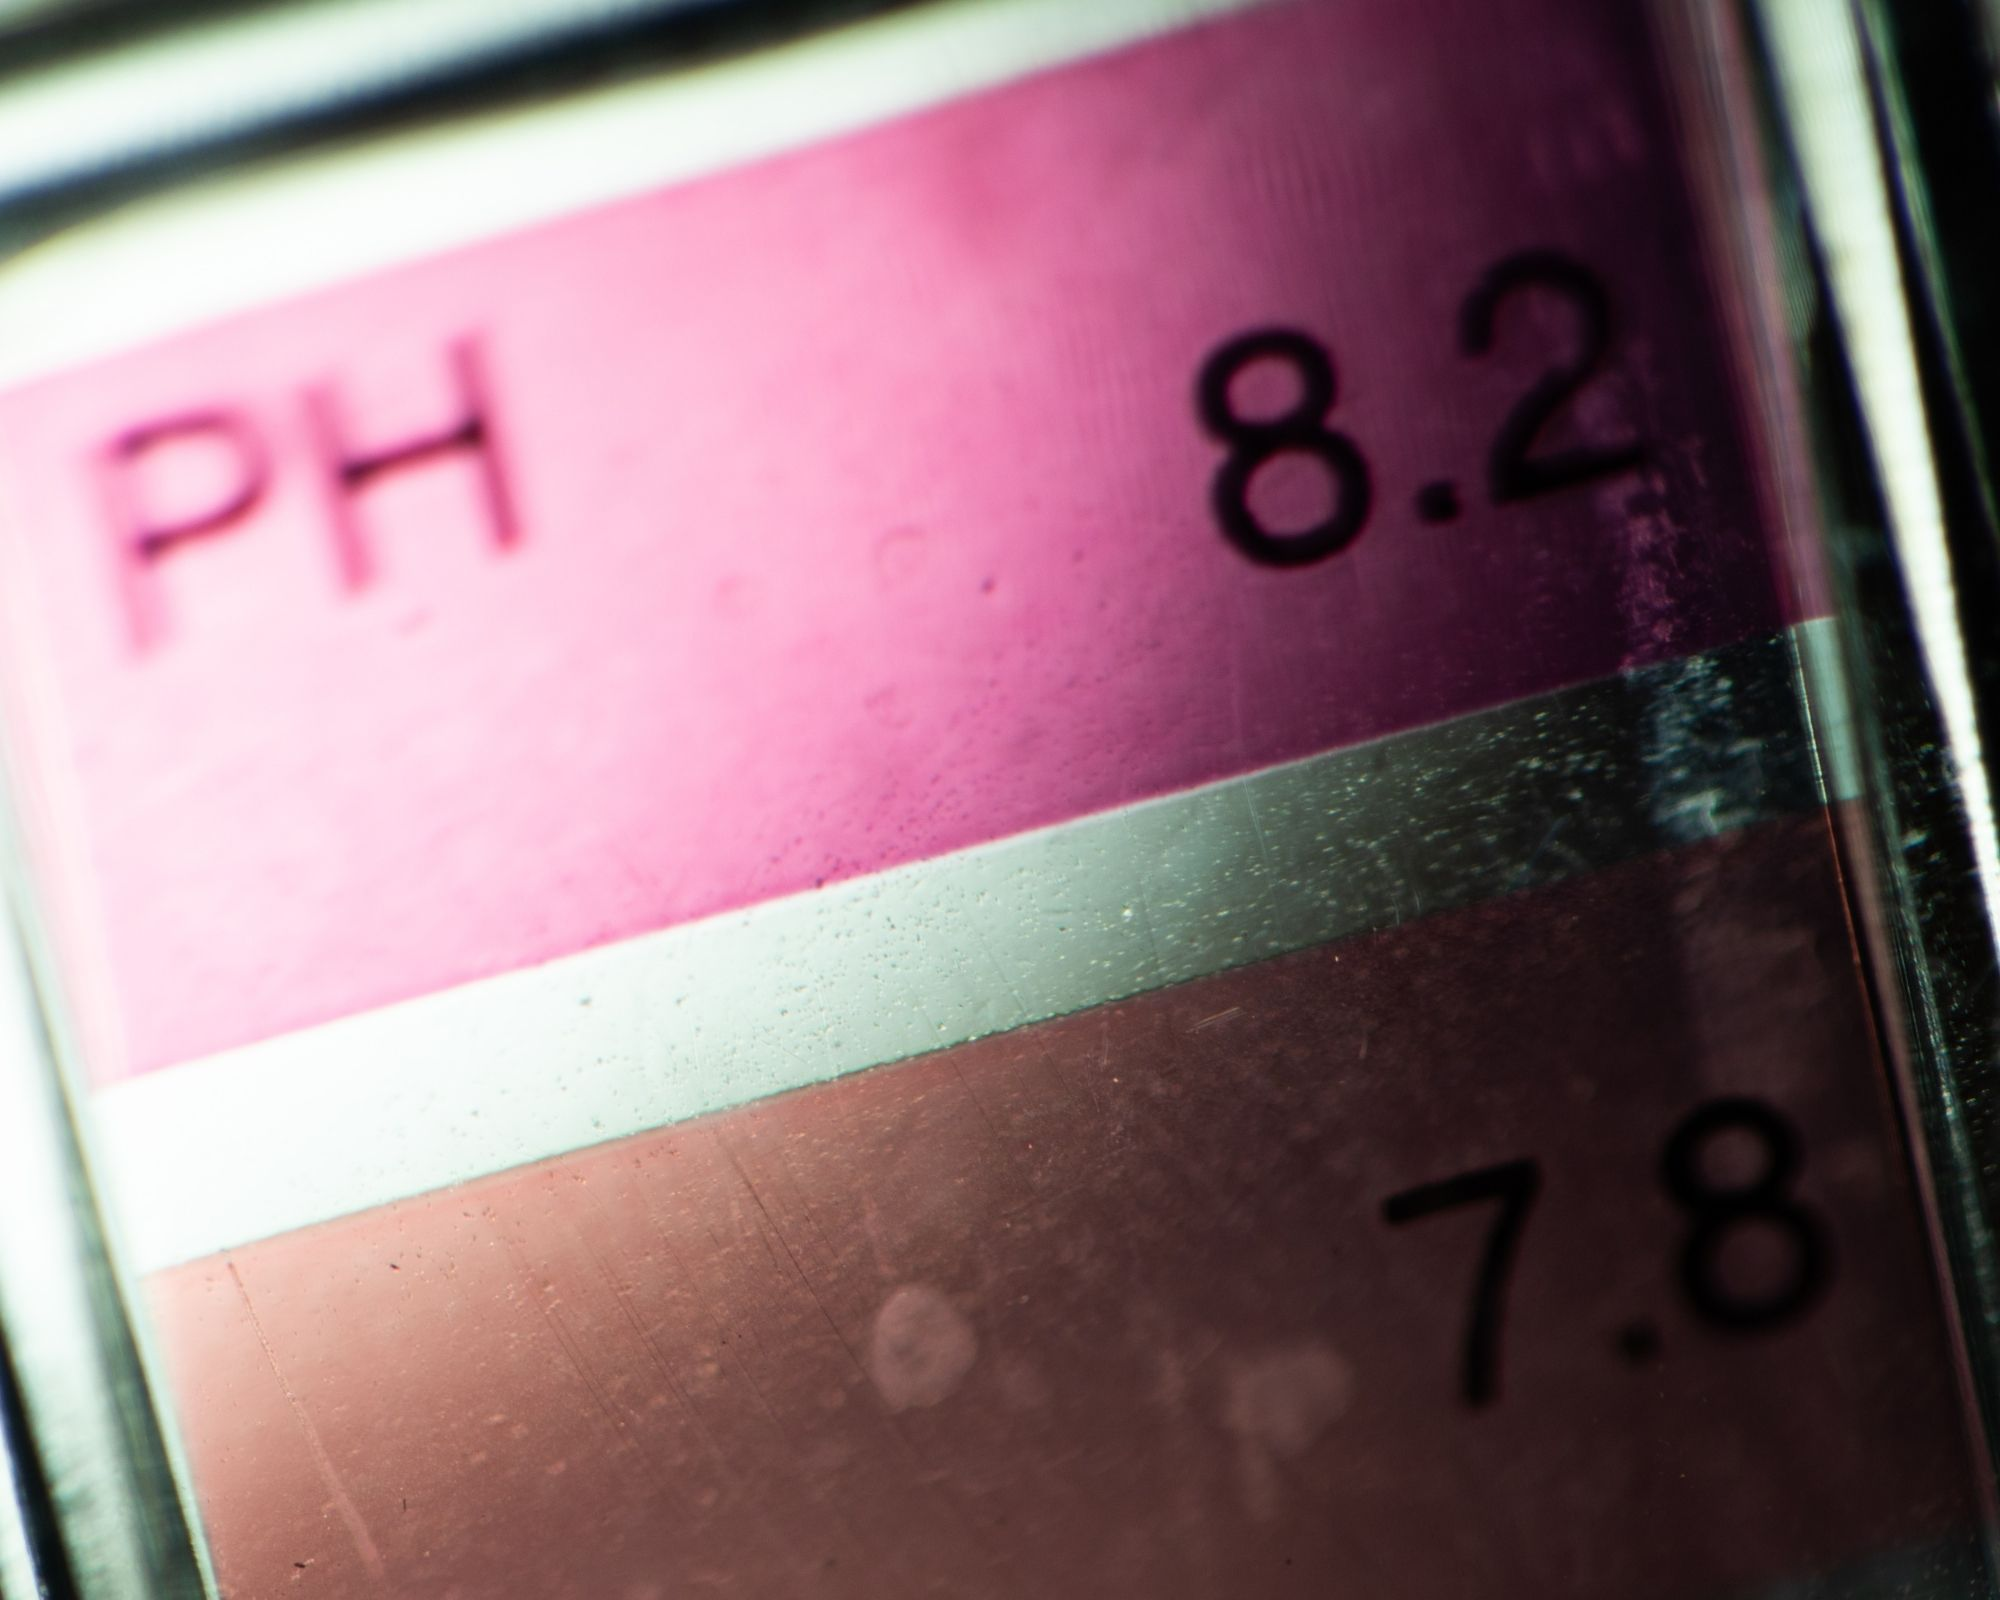 Picture of a PH scale. - in reference to eggshell membrane's effect on the PH range.